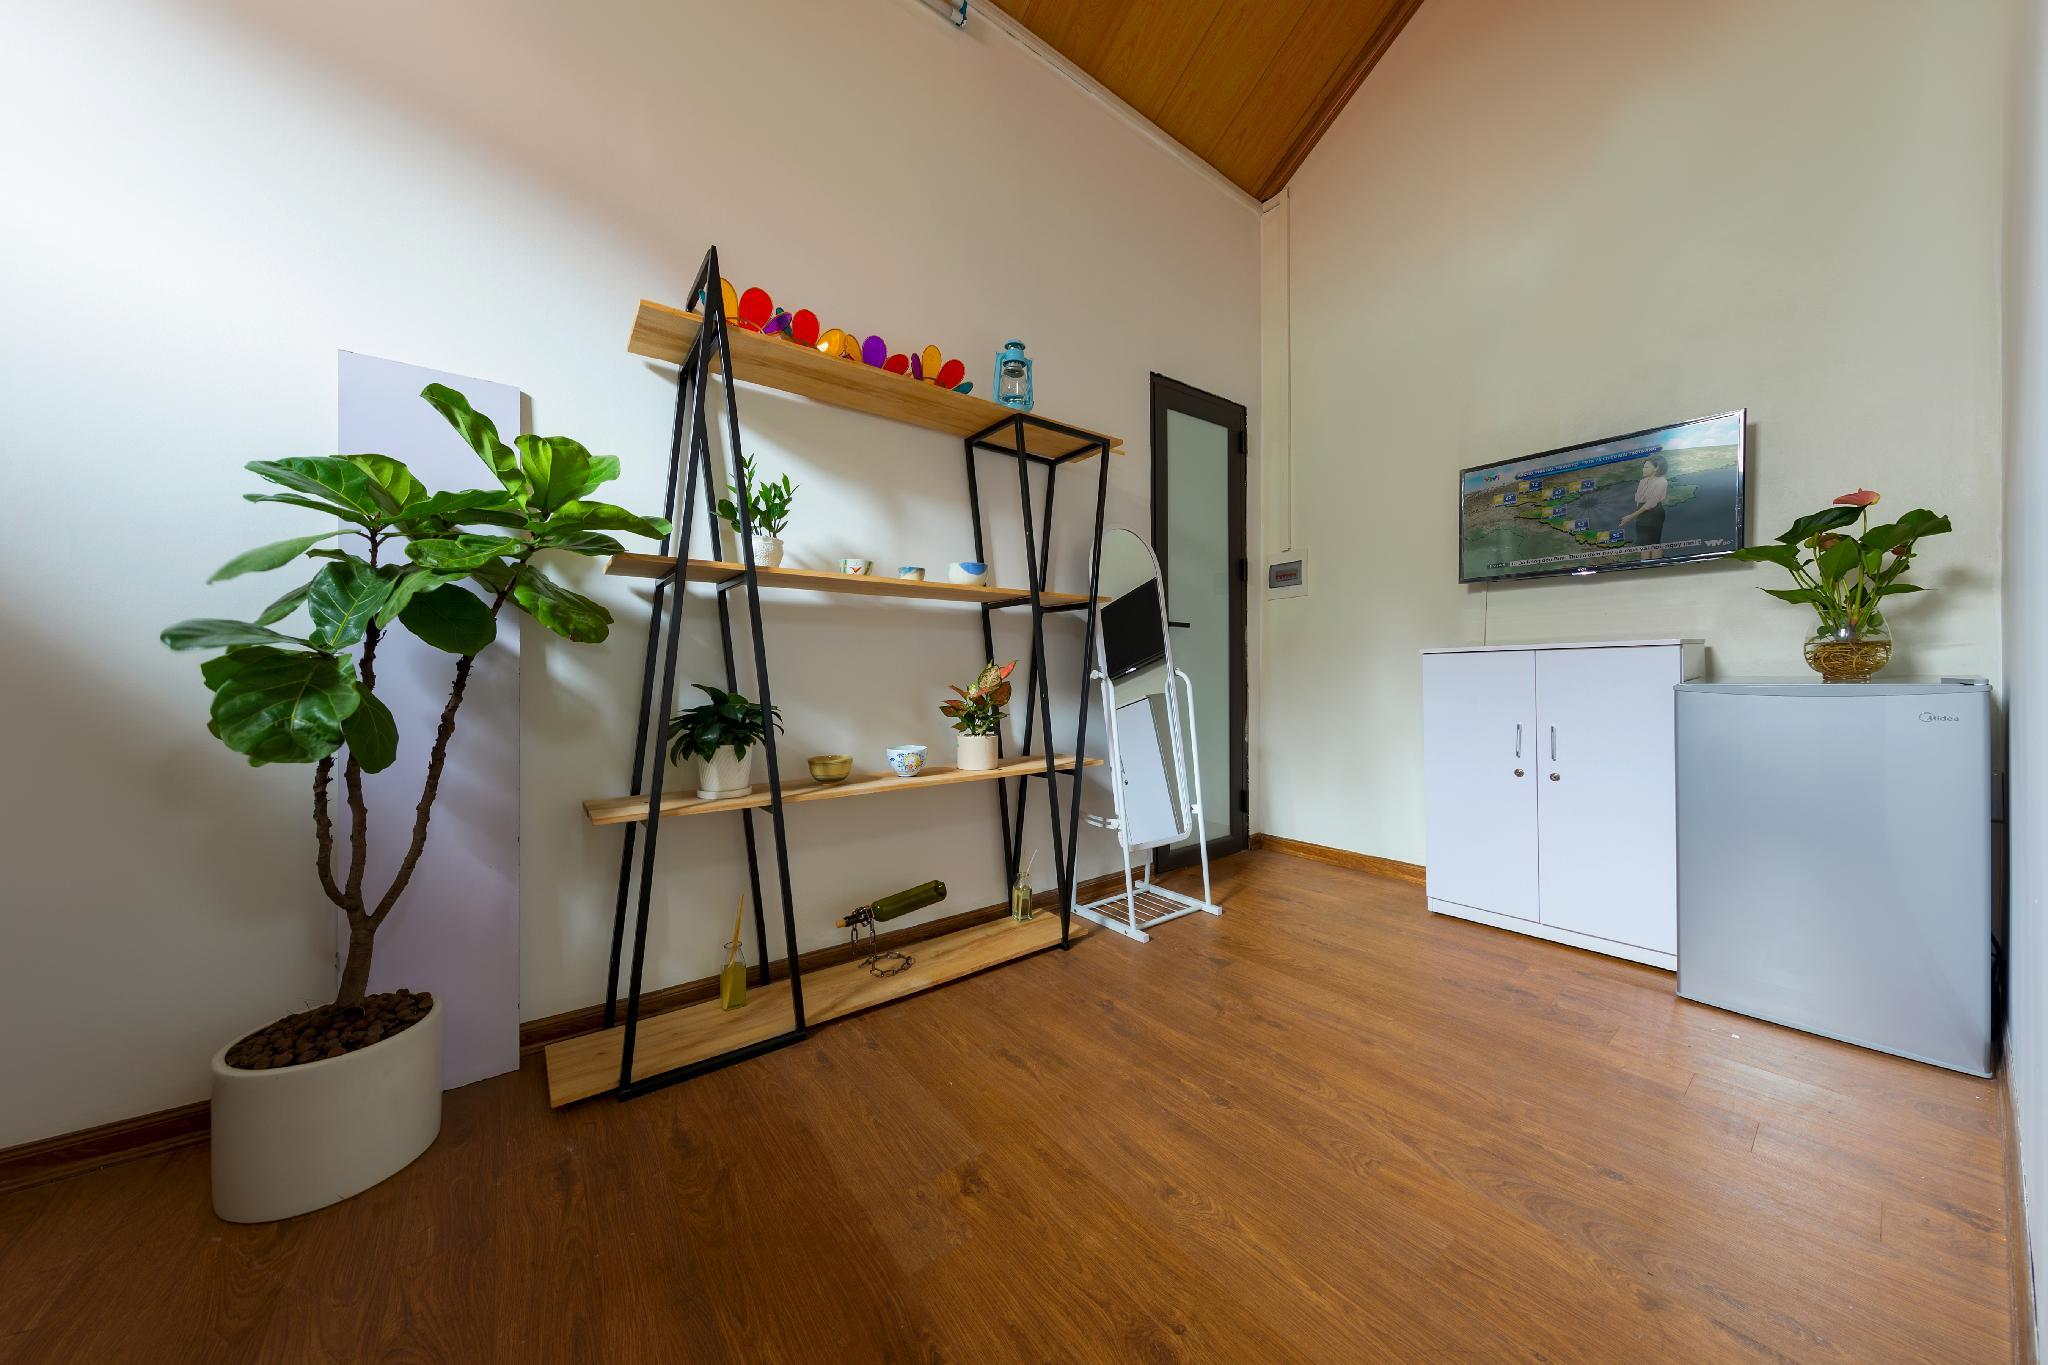 4beds- Entire Flat in Central Hanoi Old Quarter, Hoàn Kiếm